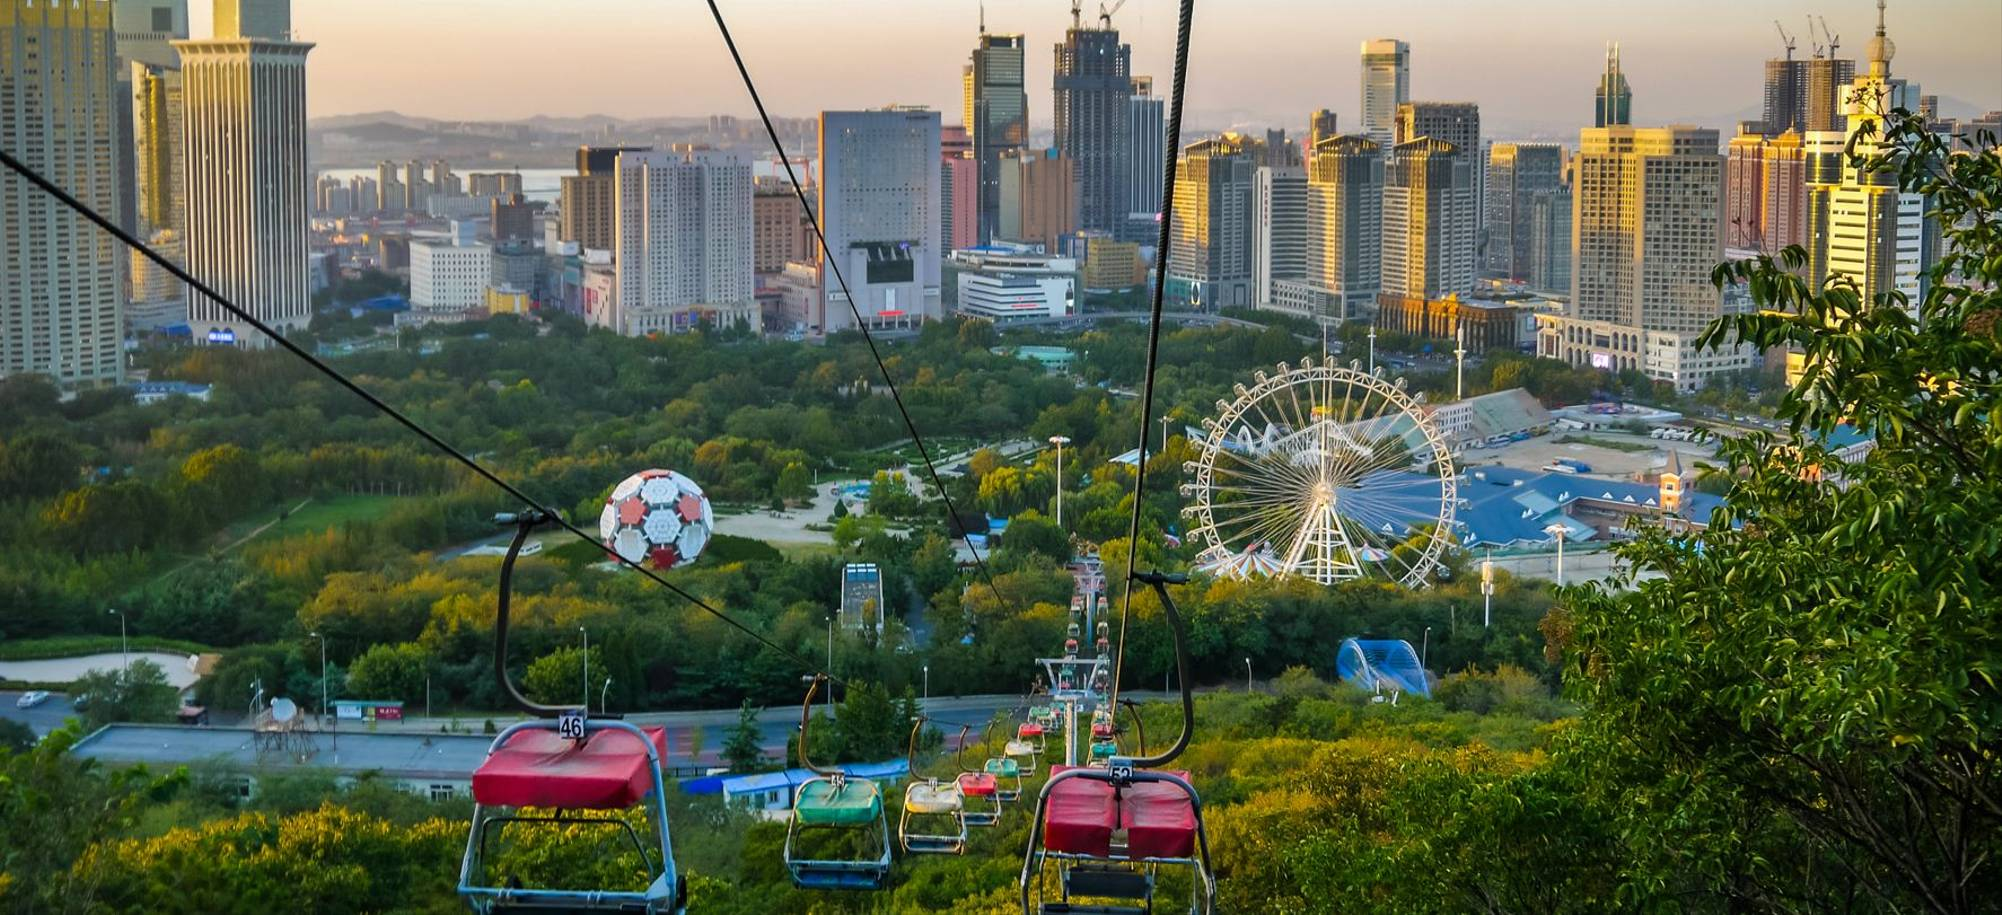 Dalian   Colourful Chairlifts Above The Cityscape   Itinerary Desktop